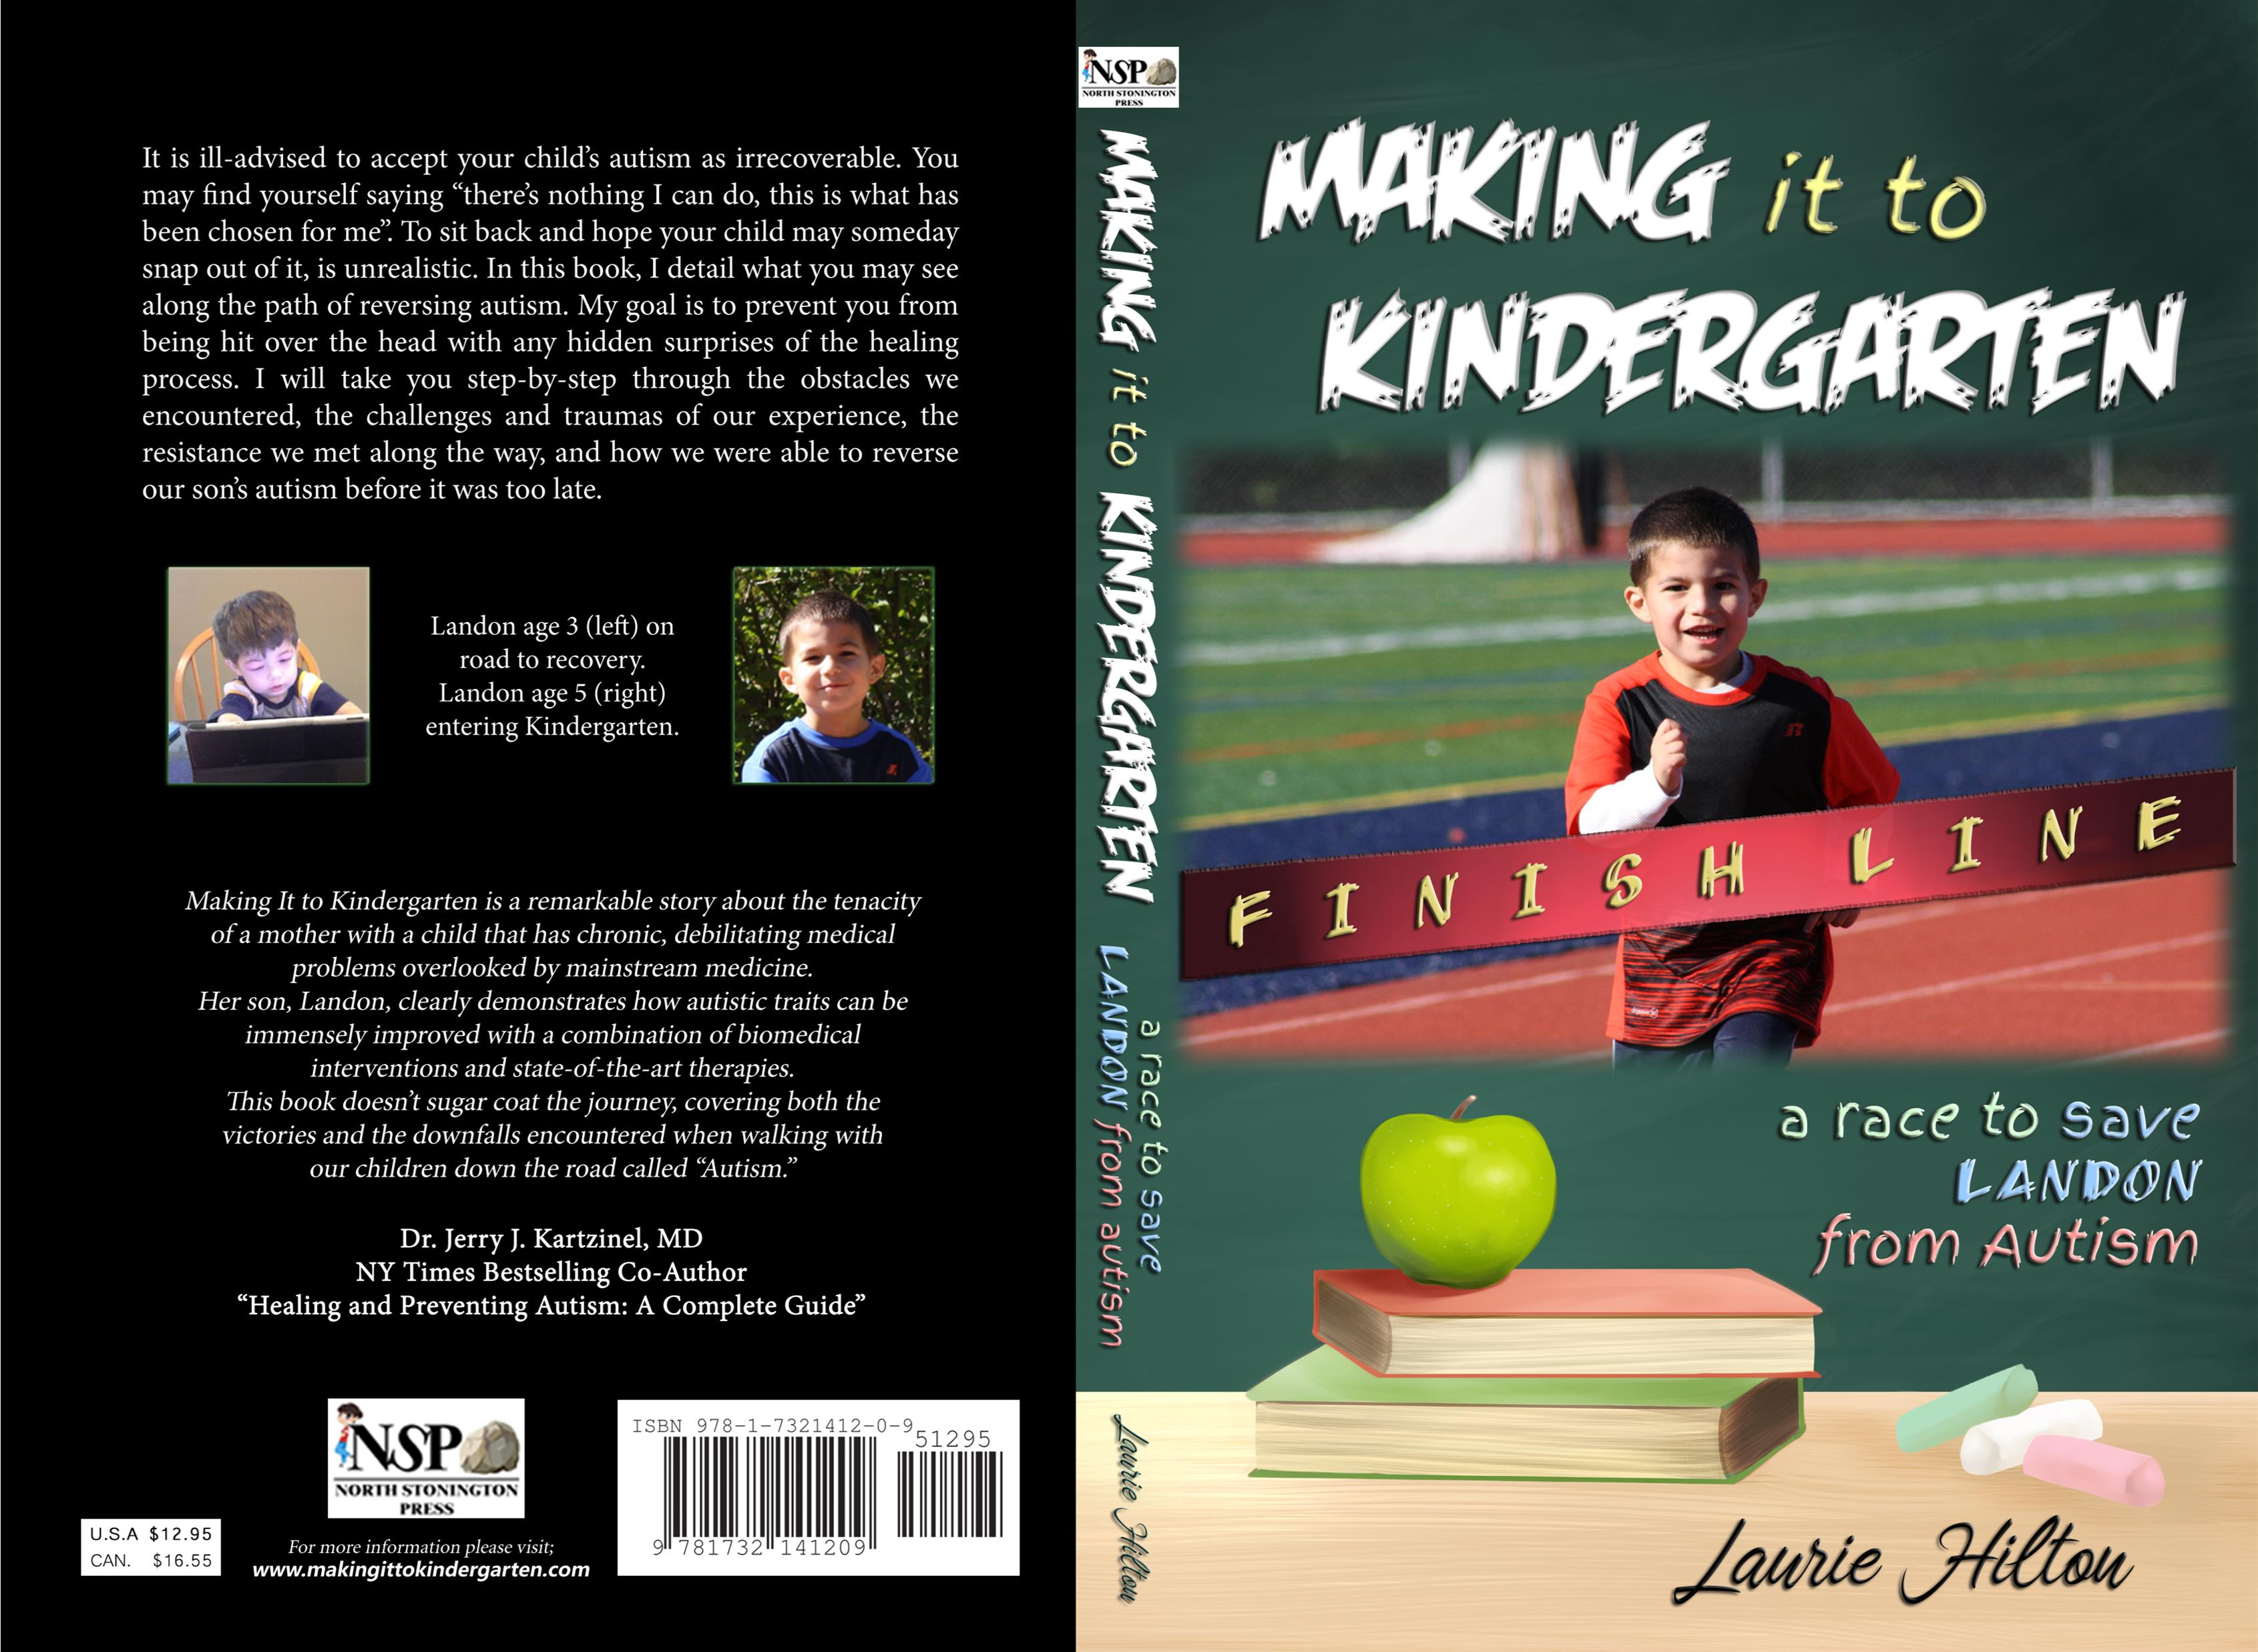 Making it to Kindergarten cover image